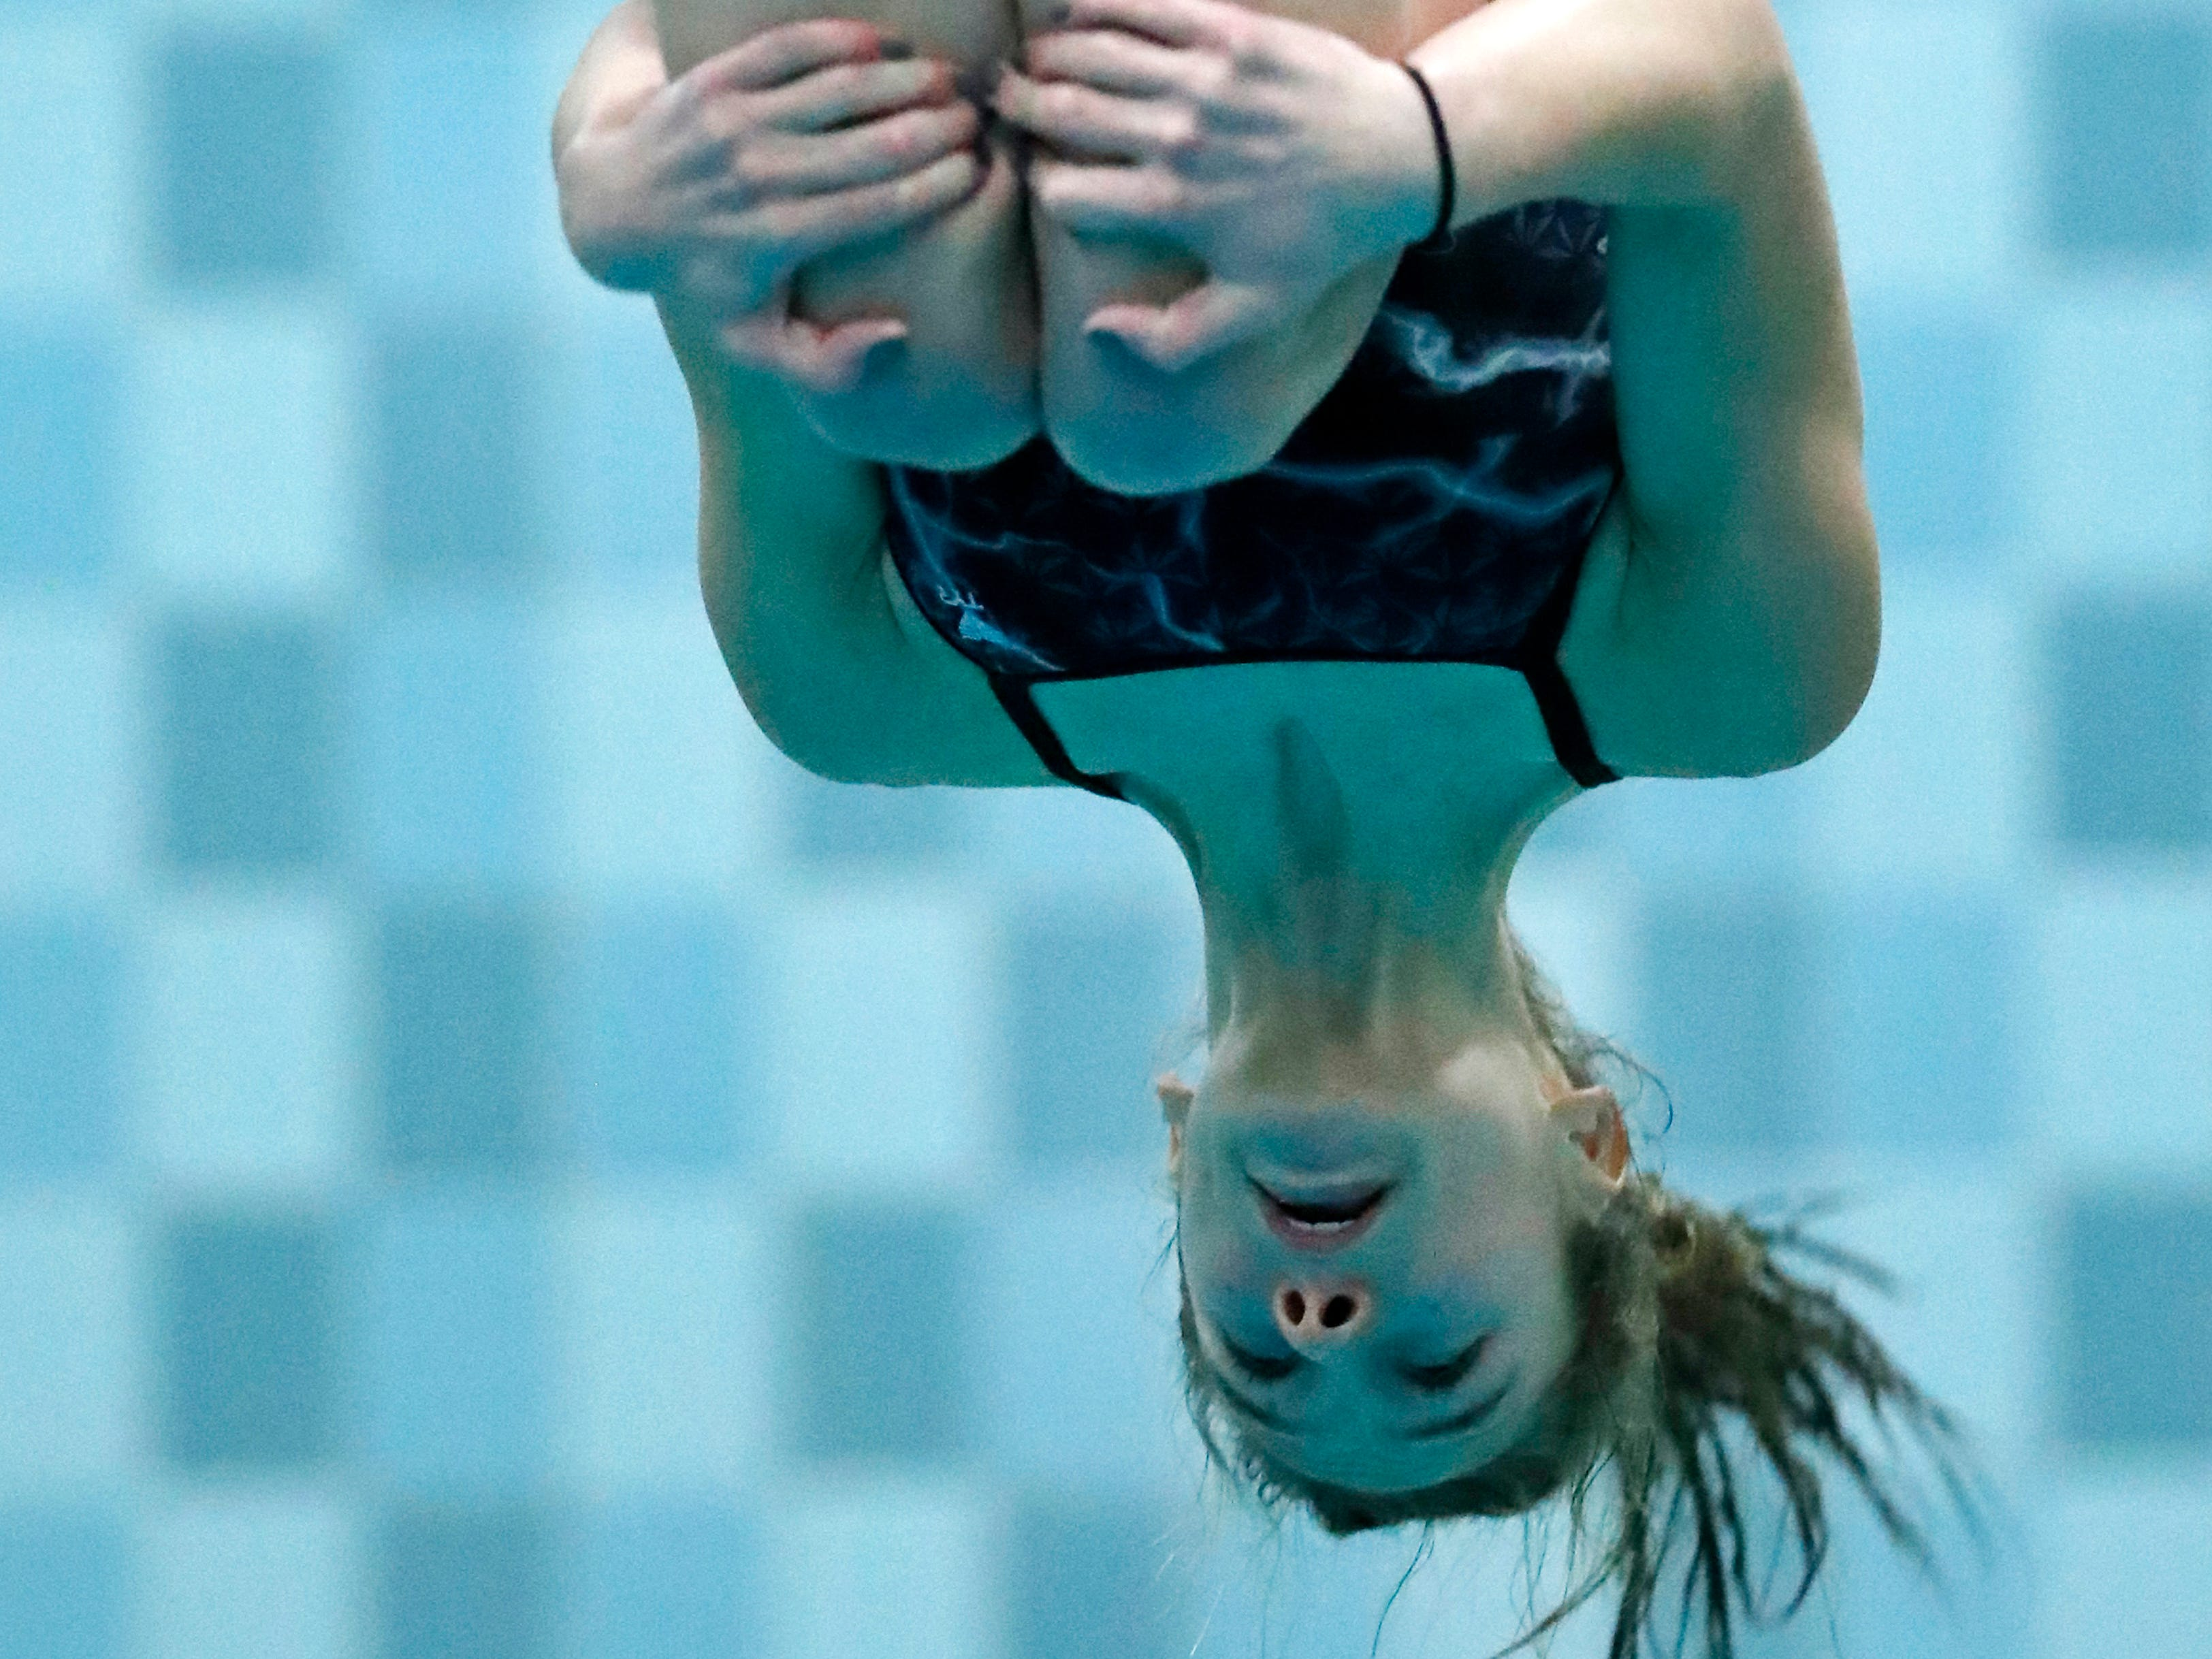 Plymouth's Danielle Tesky competes in the diving finals during WIAA Division 2 State Swimming and Diving Friday, Nov. 9, 2018, at the UW Natatorium in Madison, Wis.